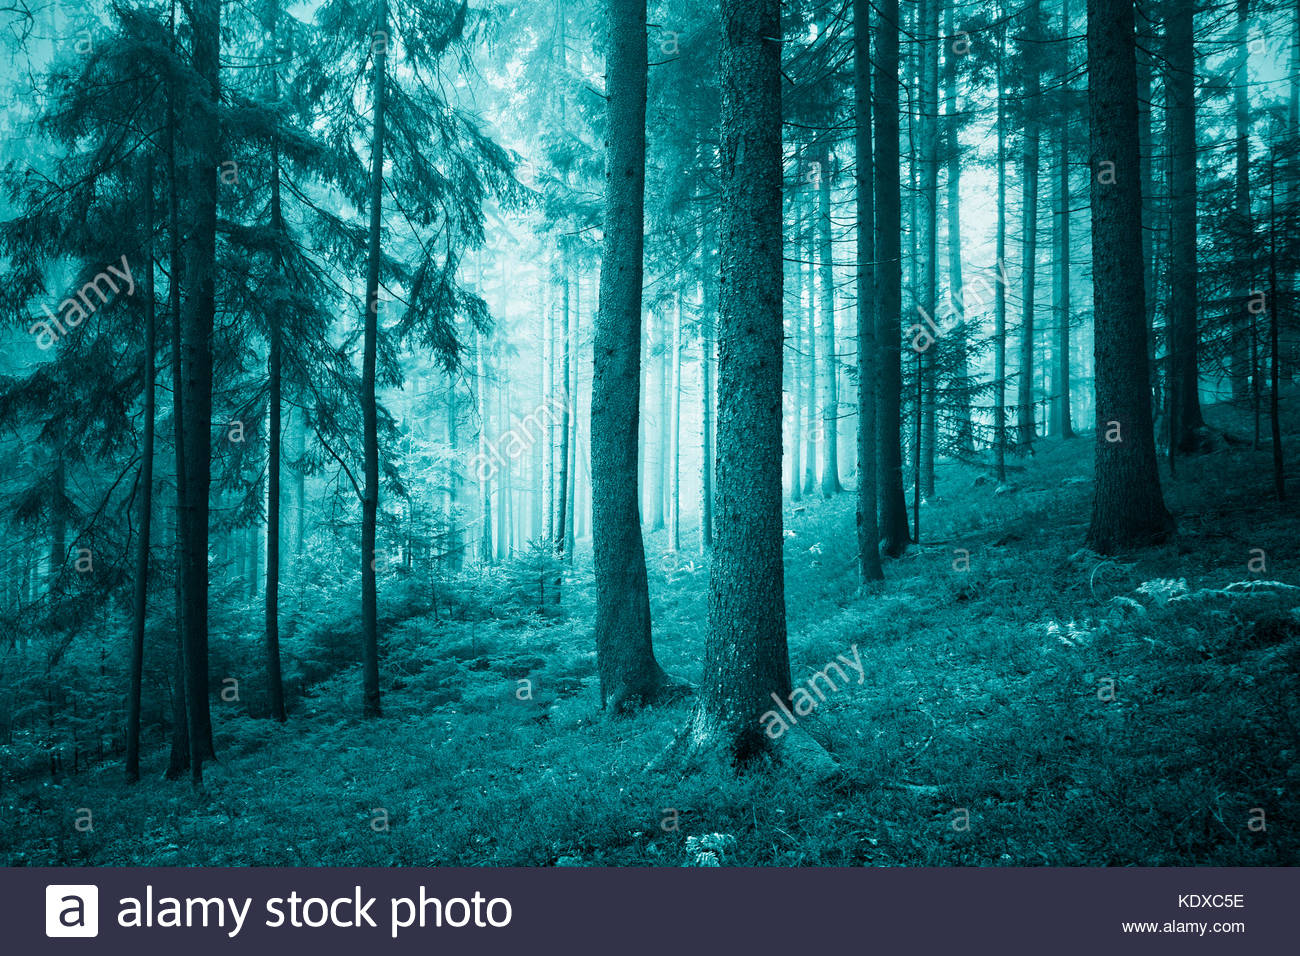 Beautiful turquoise colored dreamy conifer forest. Color filter effect used. - Stock Image